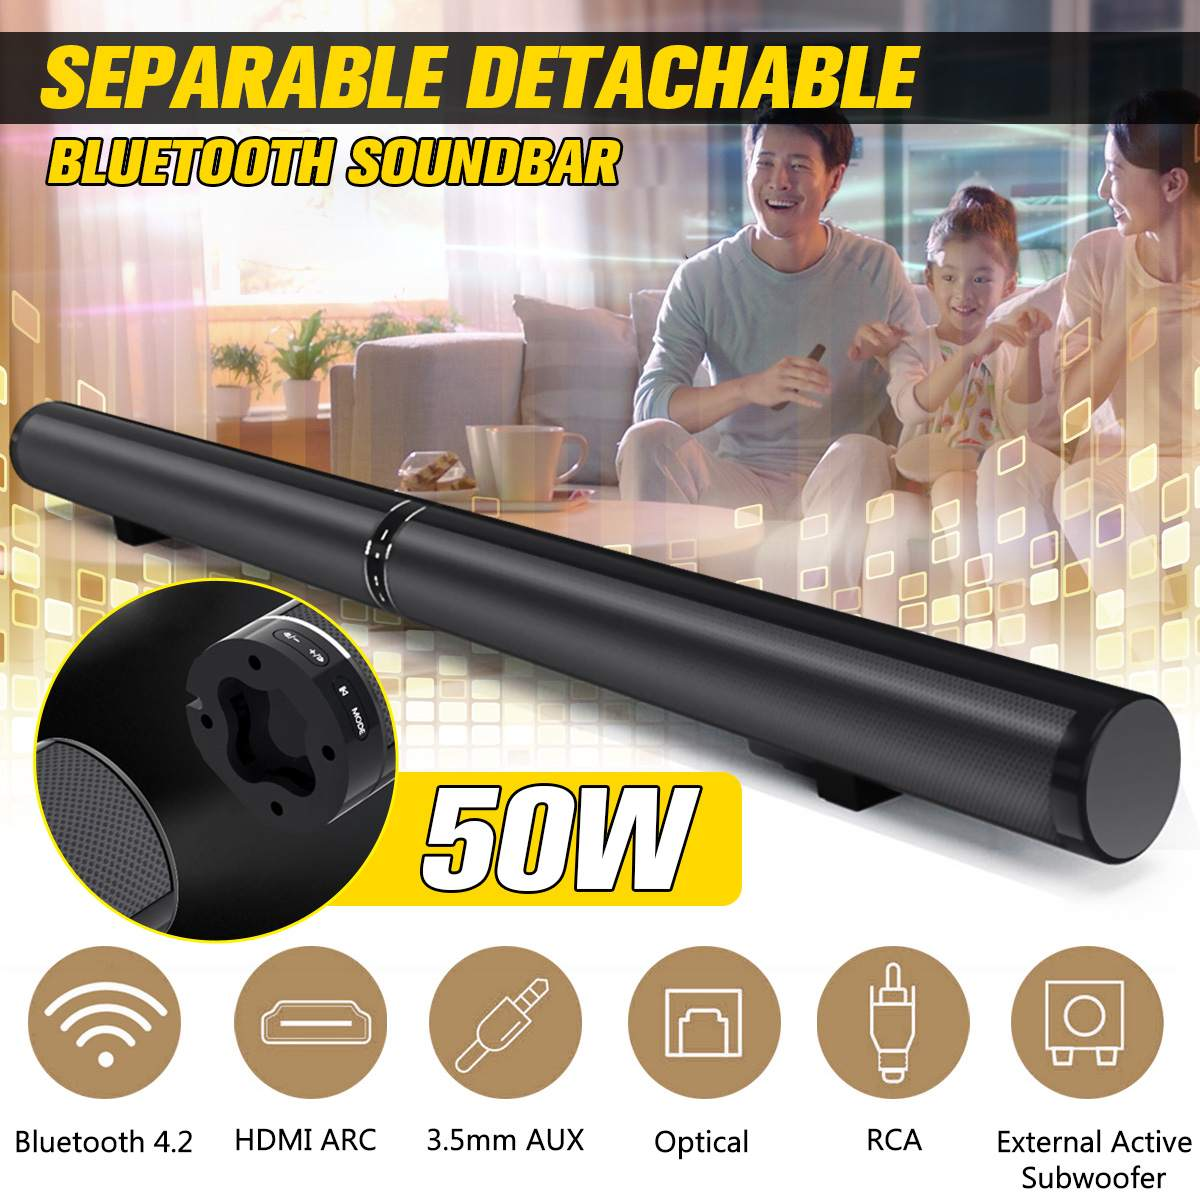 50W Detachable Wireless bluetooth Speaker Soundbar 3D Stereo Support RCA AUX HDMI Home Theatre Computer/PC Wall Bass Subwoofer